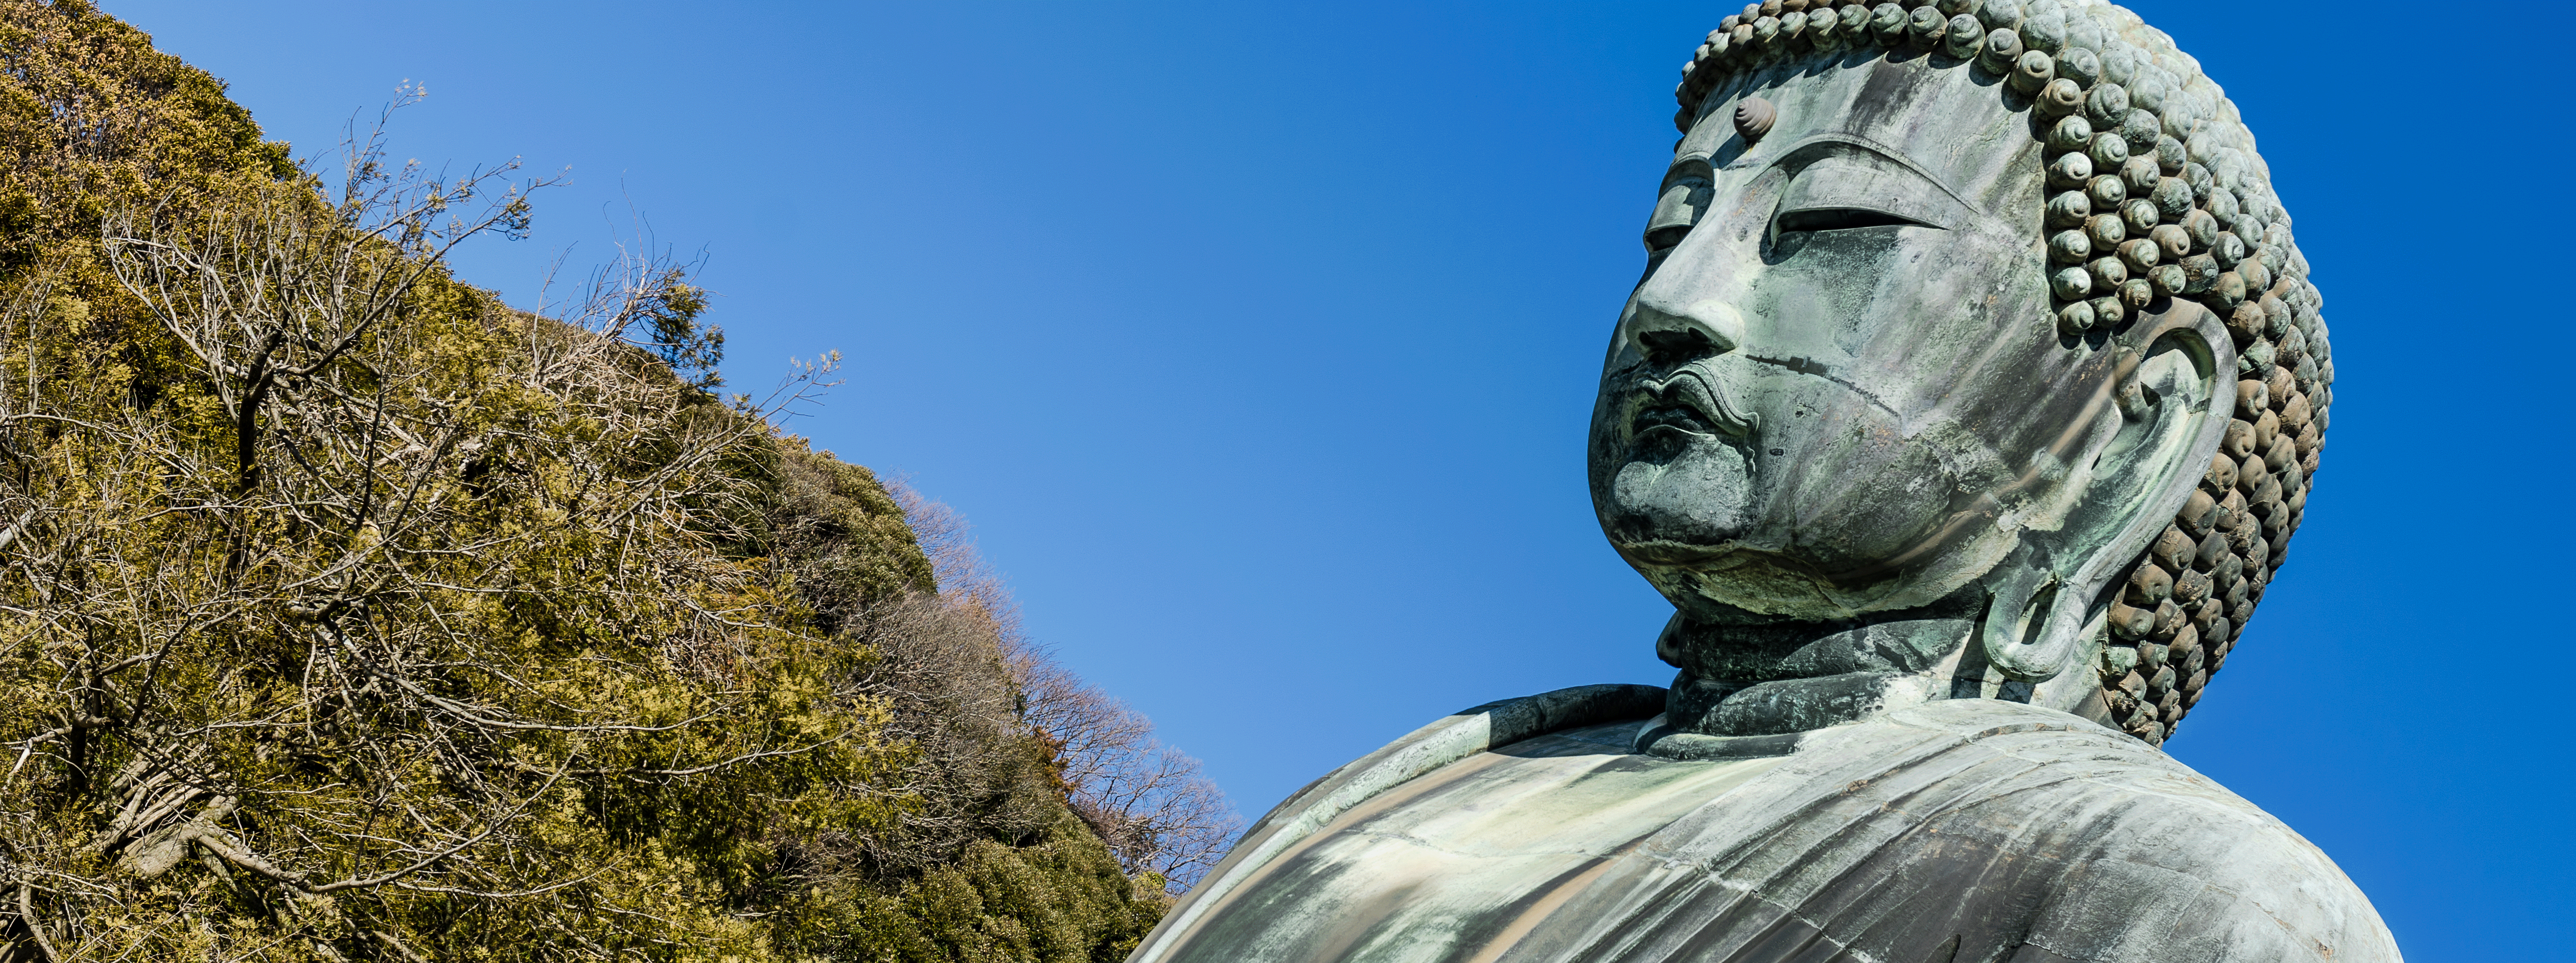 /resource/Images/hongkong/headerimage/Big-Buddha-Kamakura-Japan-.png